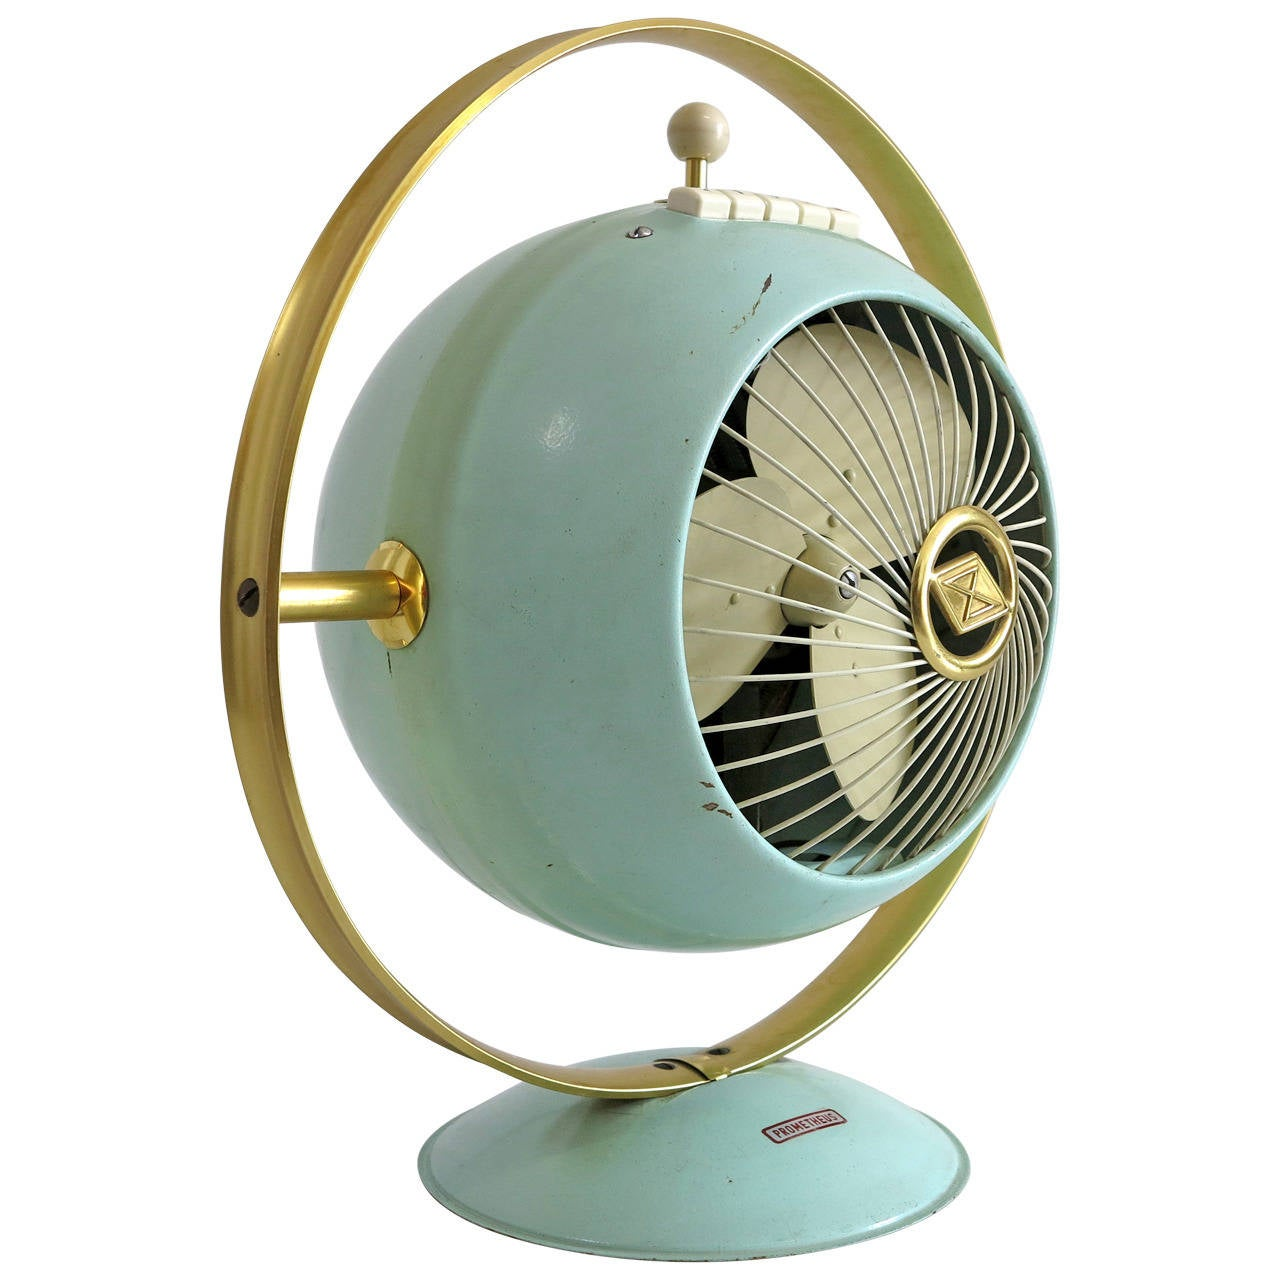 industrial space design ventilator fan germany 1950 1955 at 1stdibs. Black Bedroom Furniture Sets. Home Design Ideas